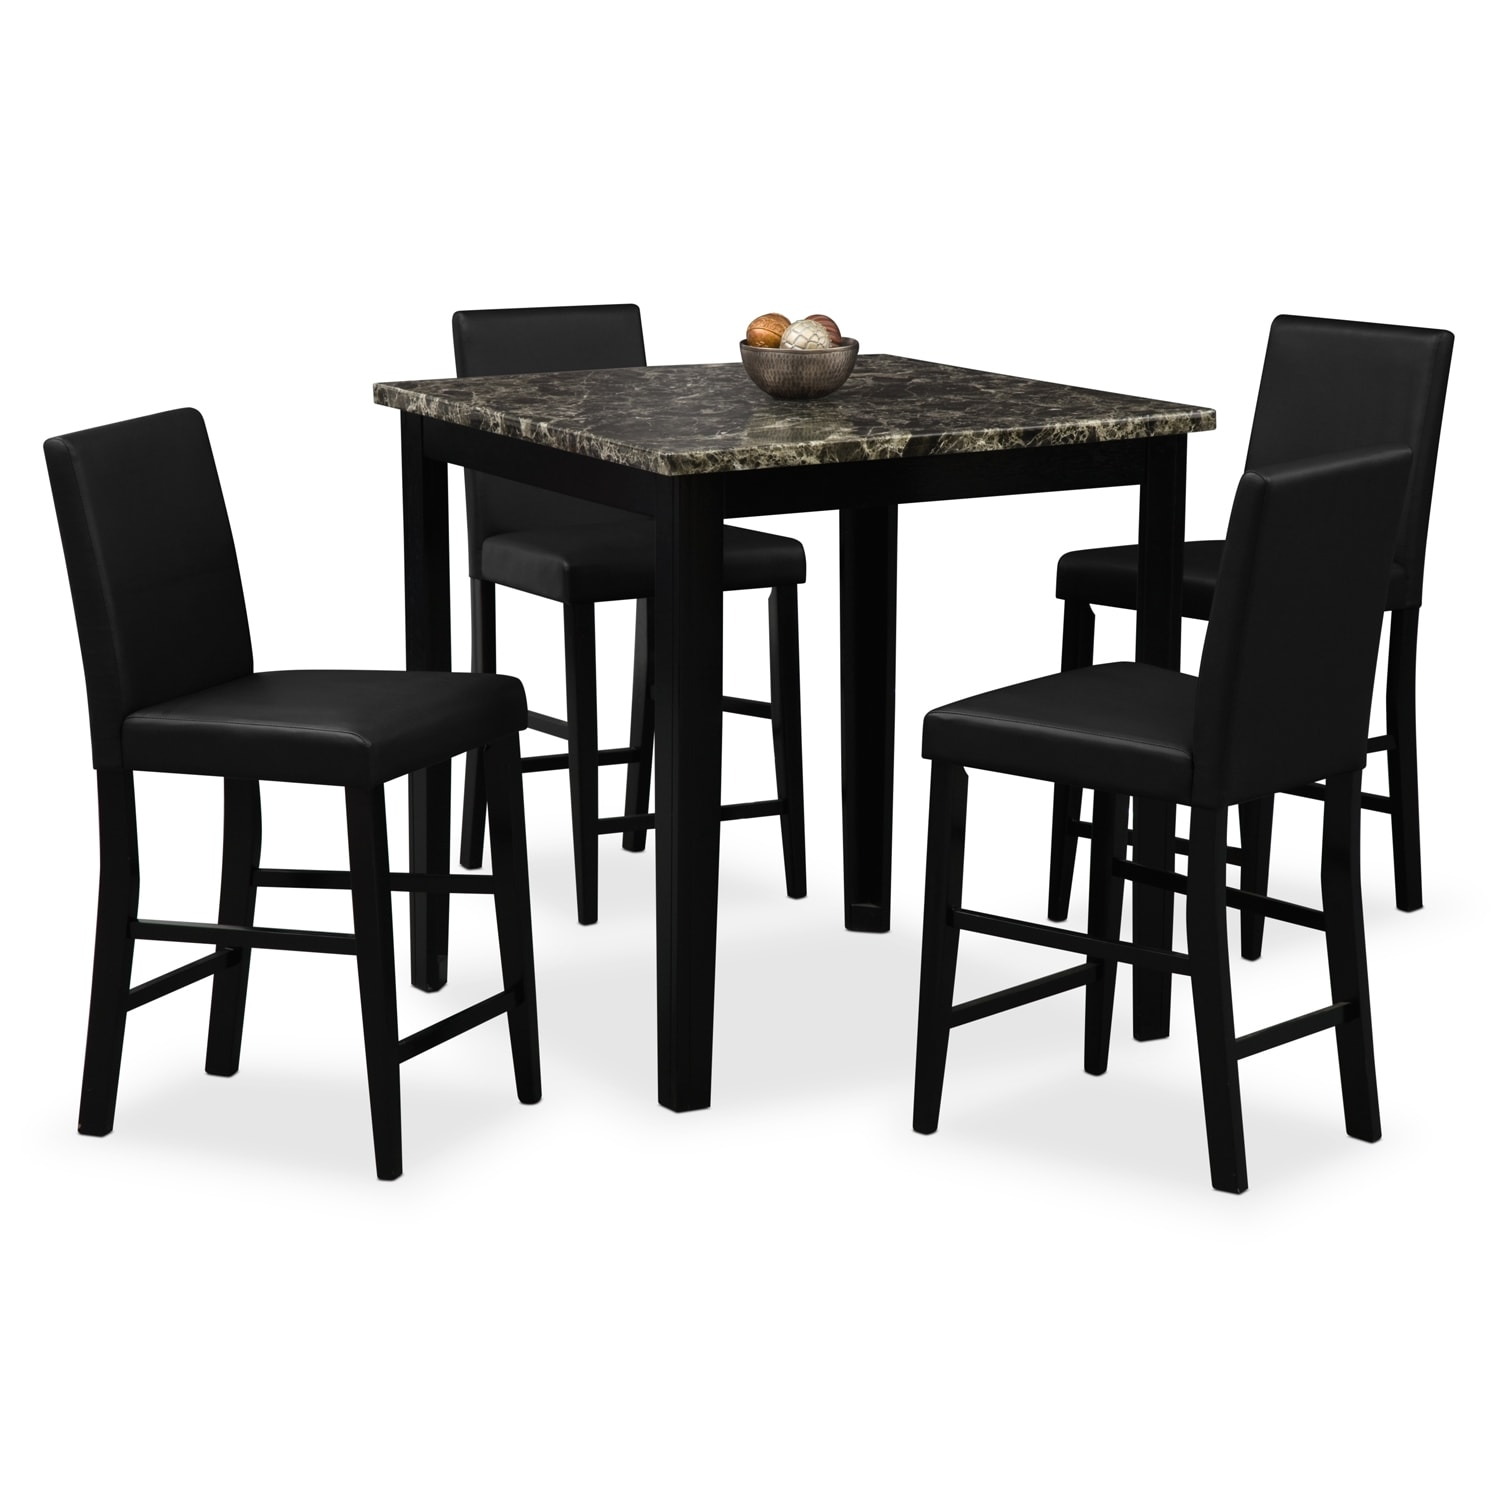 Shadow Counter Height Table And 4 Chairs Black Value City Furniture